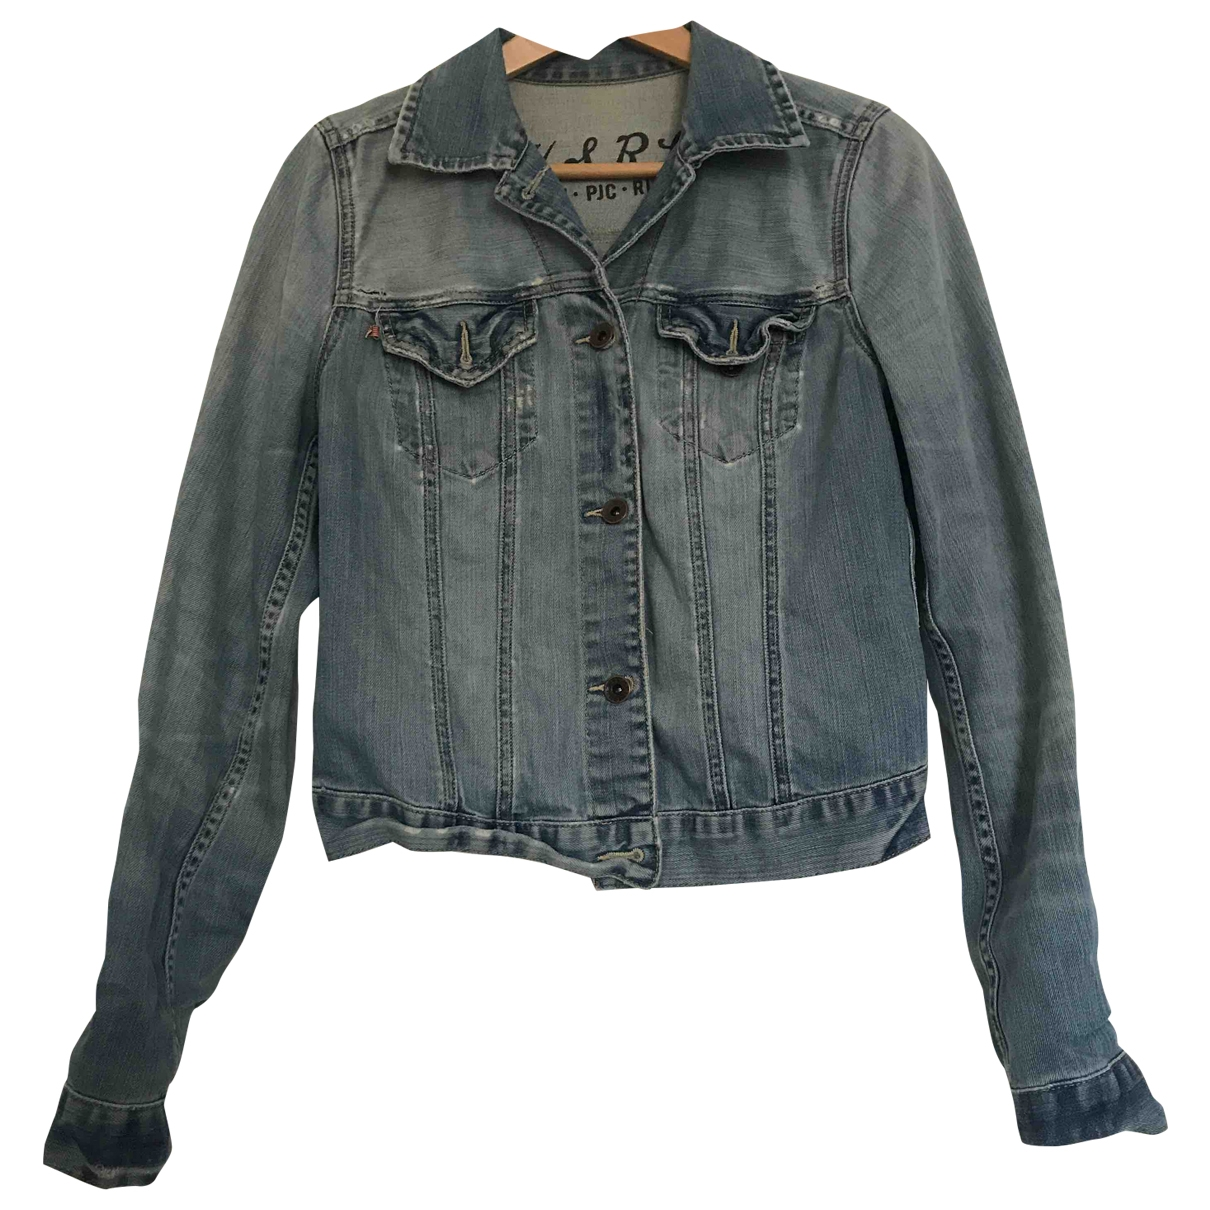 Polo Ralph Lauren \N Jacke in  Blau Denim - Jeans